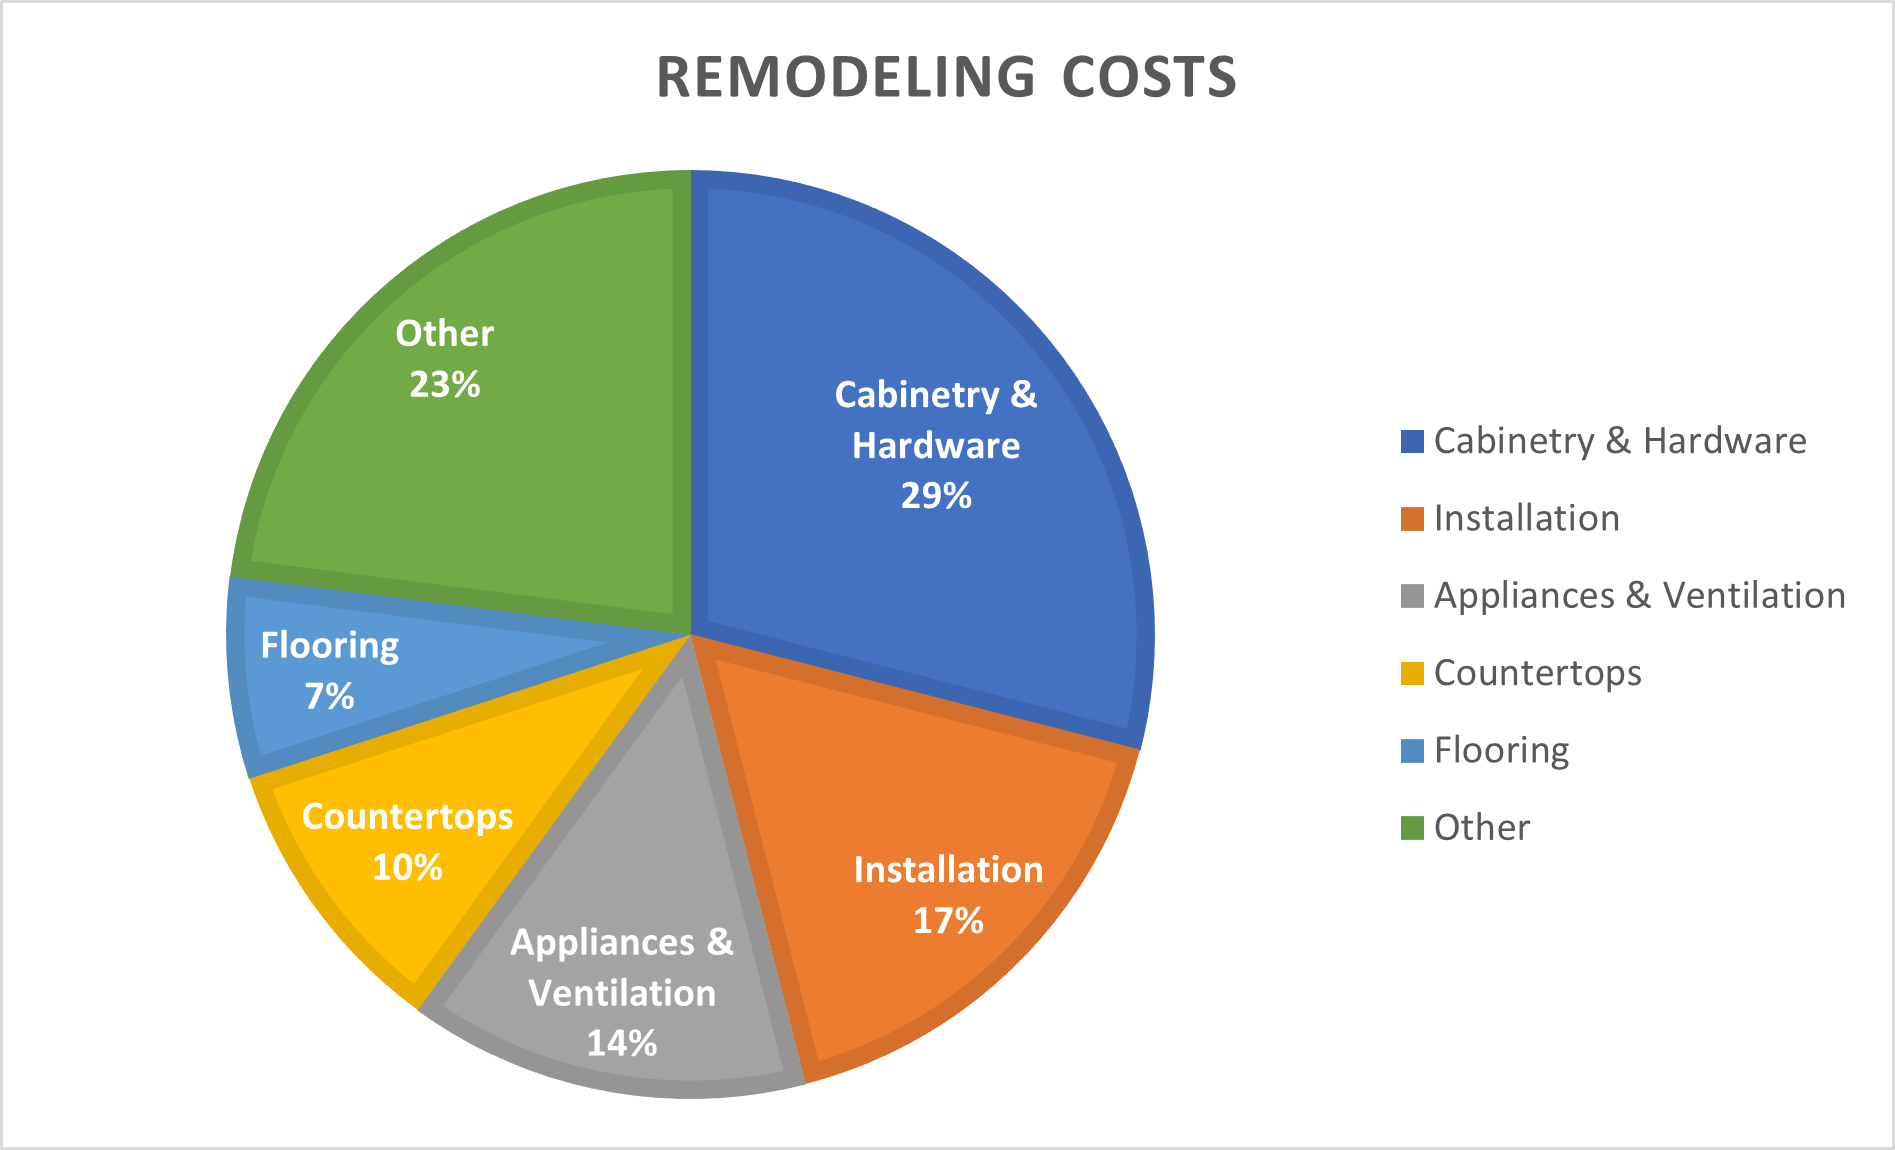 How Much is a Kitchen Remodel Going to Cost Me in 2021-2022?